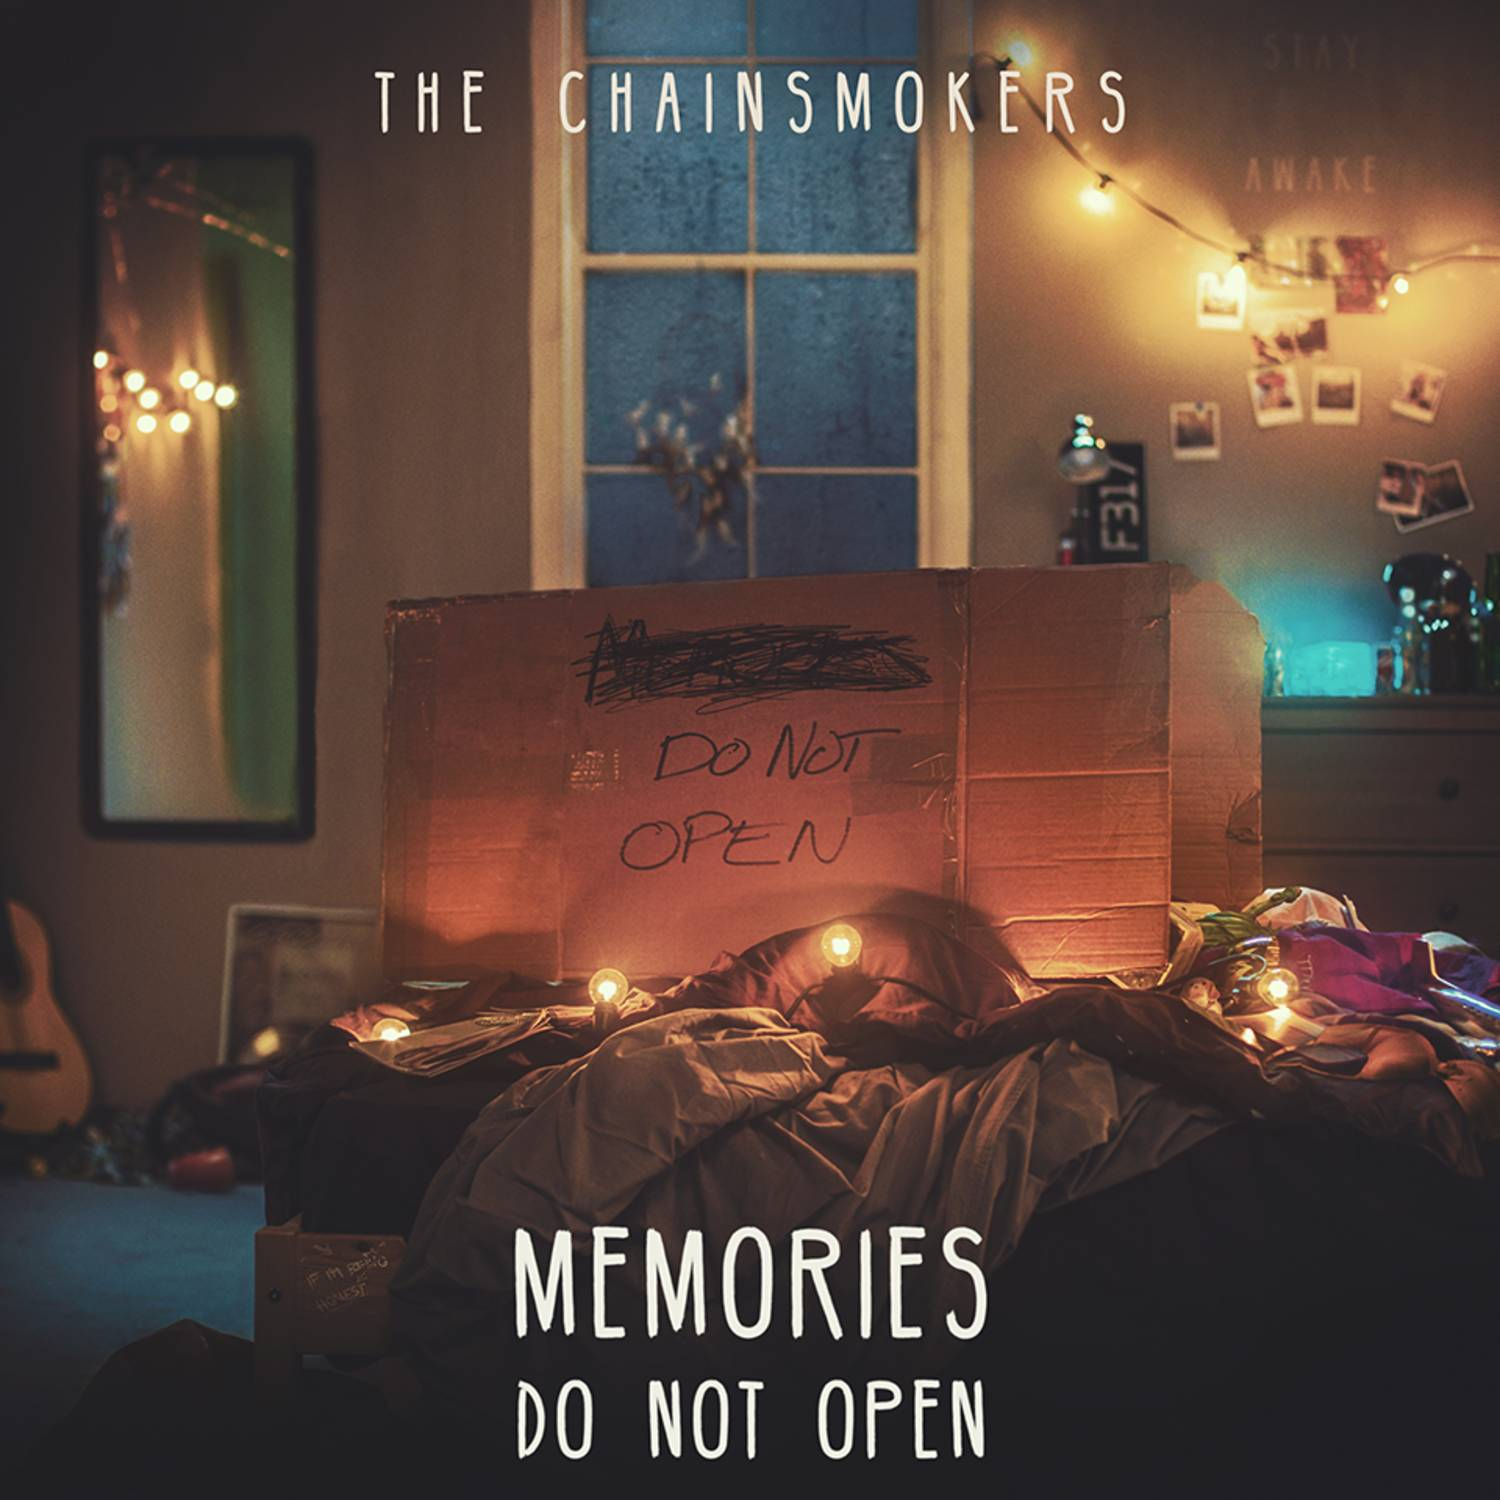 1-THE CHAINSMOKERS